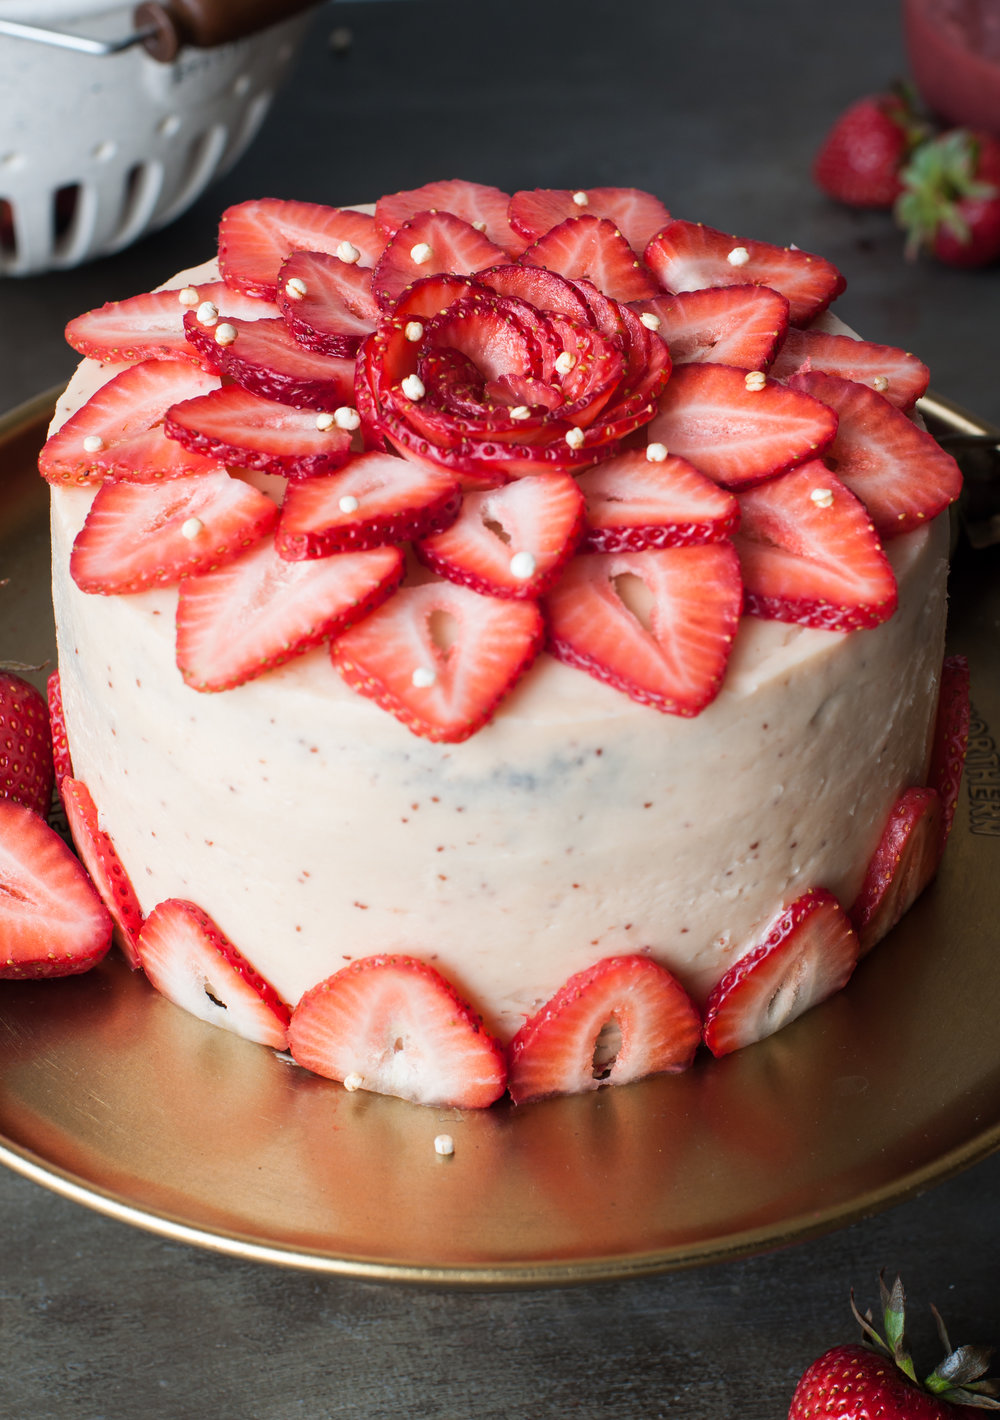 Choc Cake x Strawberry Mascarpone-0424-2.jpg